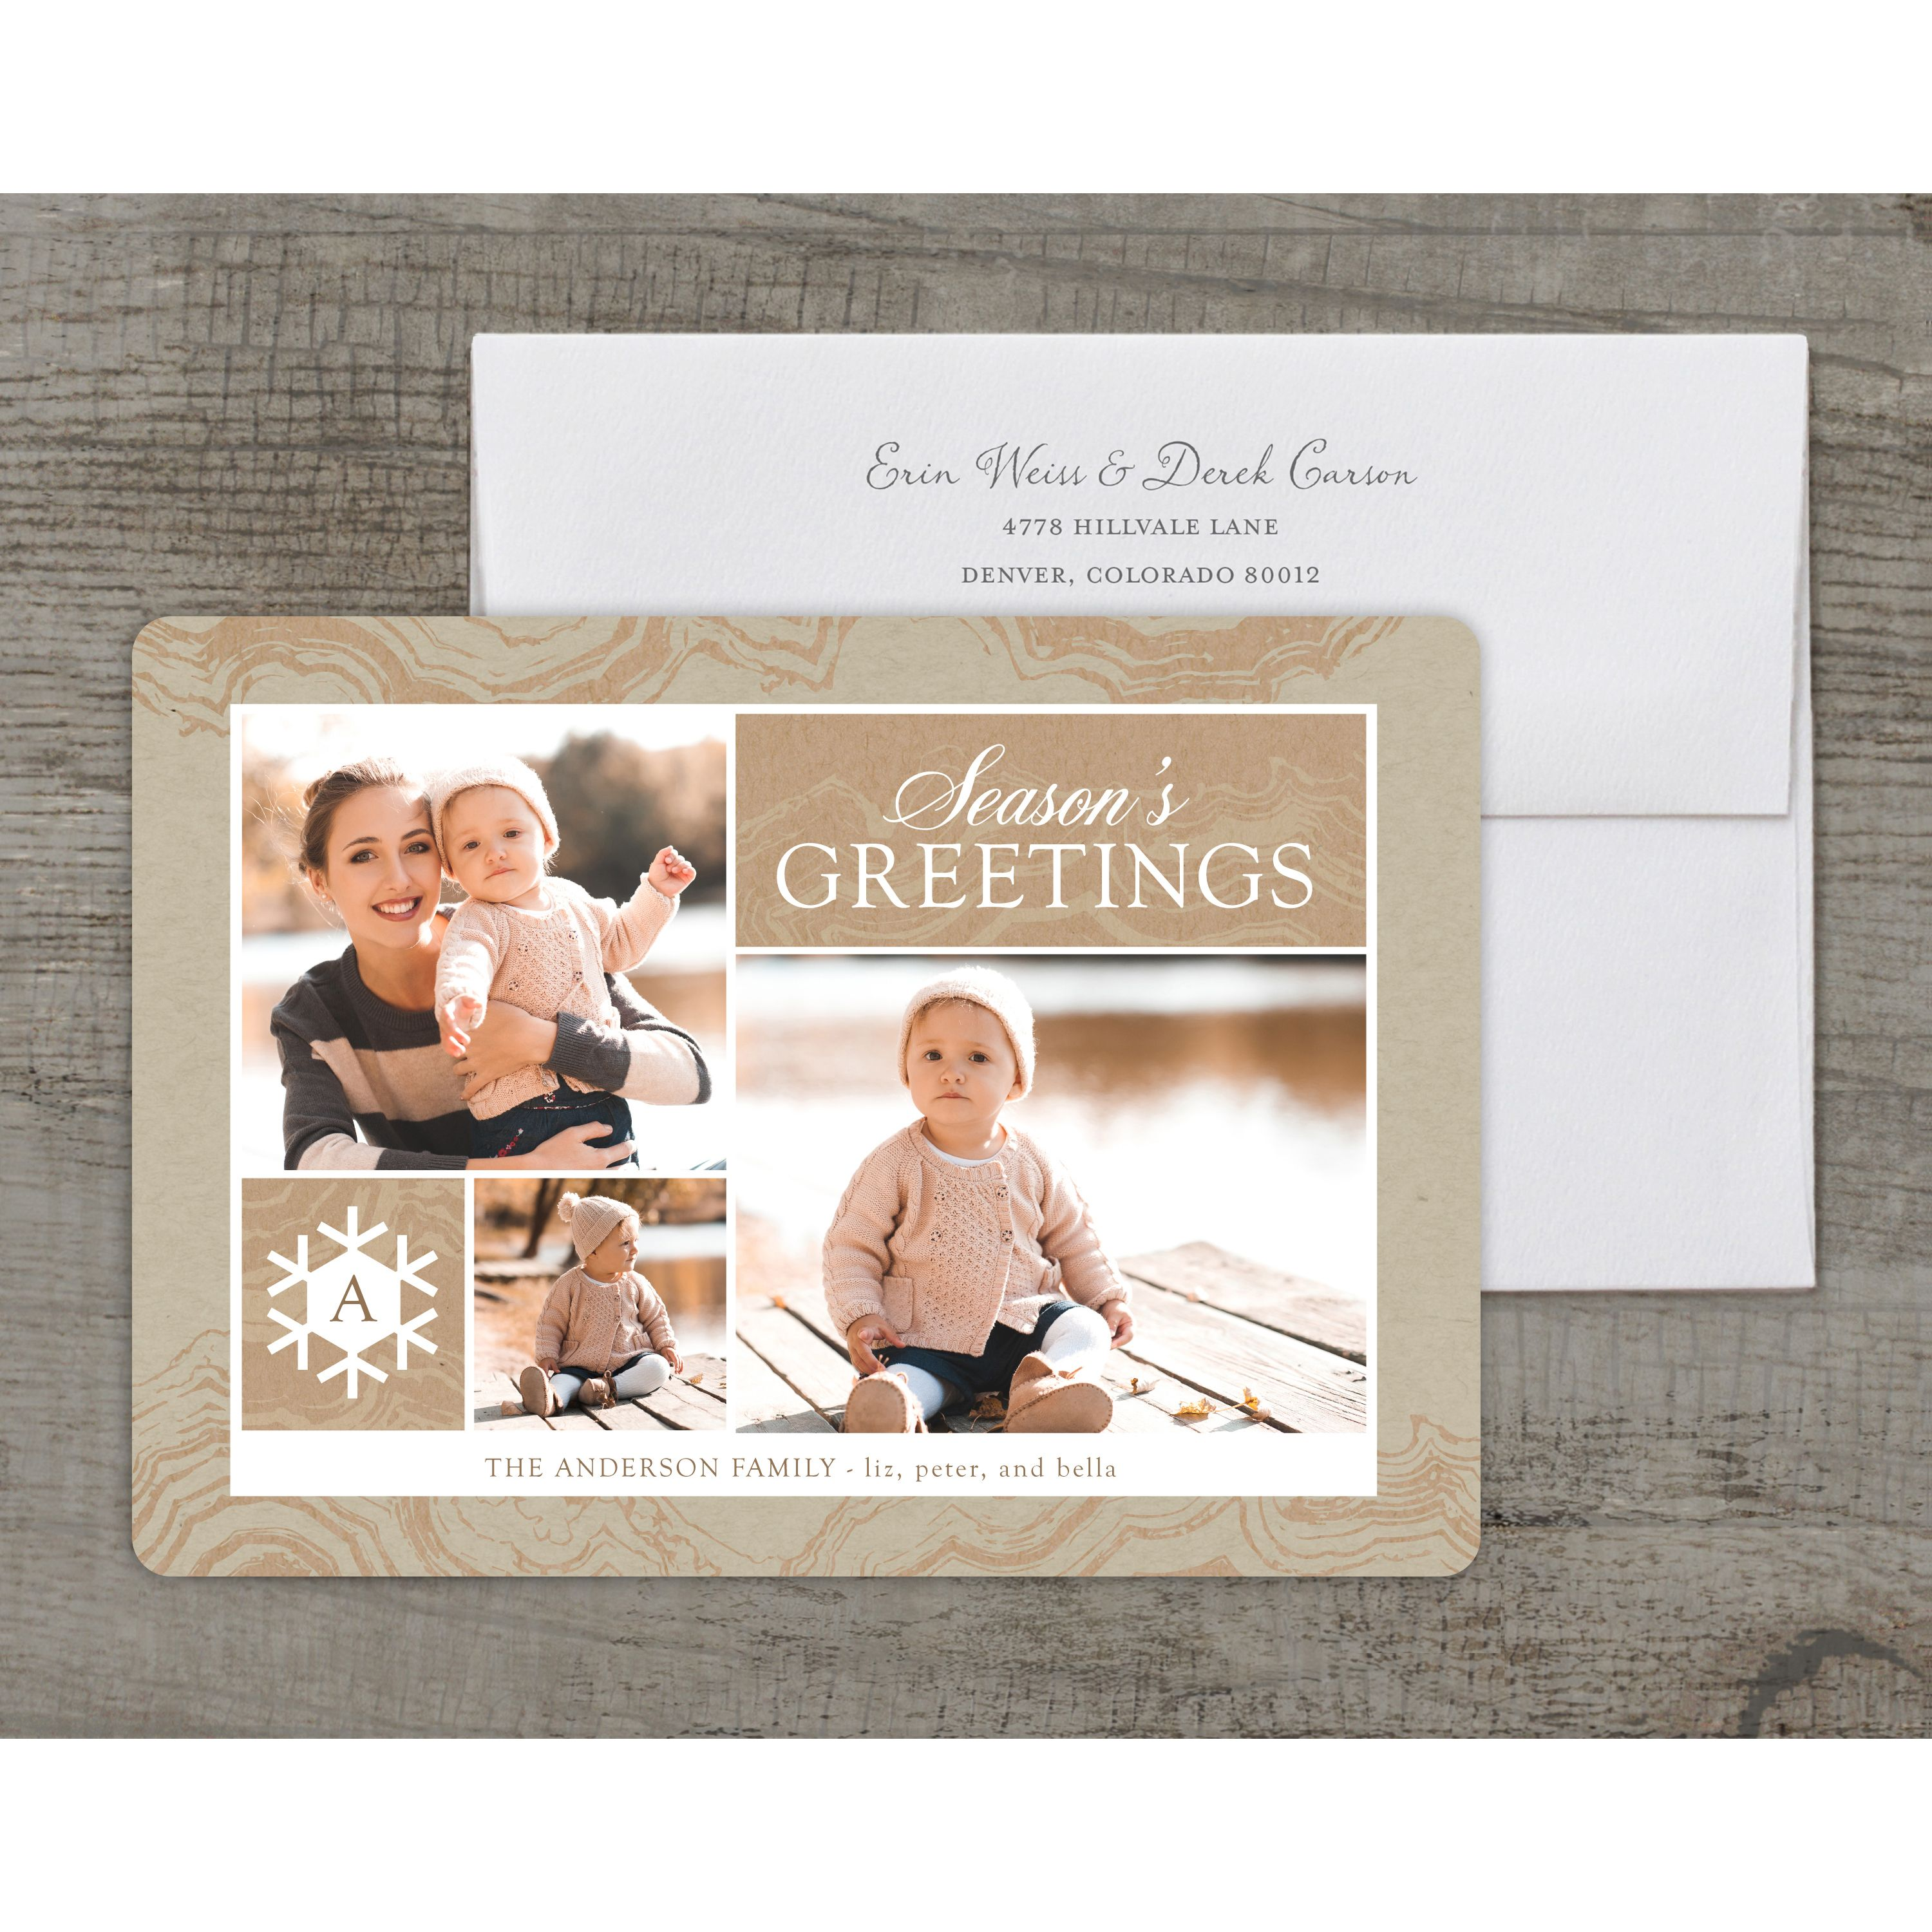 Frosty Season - Deluxe 5x7 Personalized Holiday Holiday Card